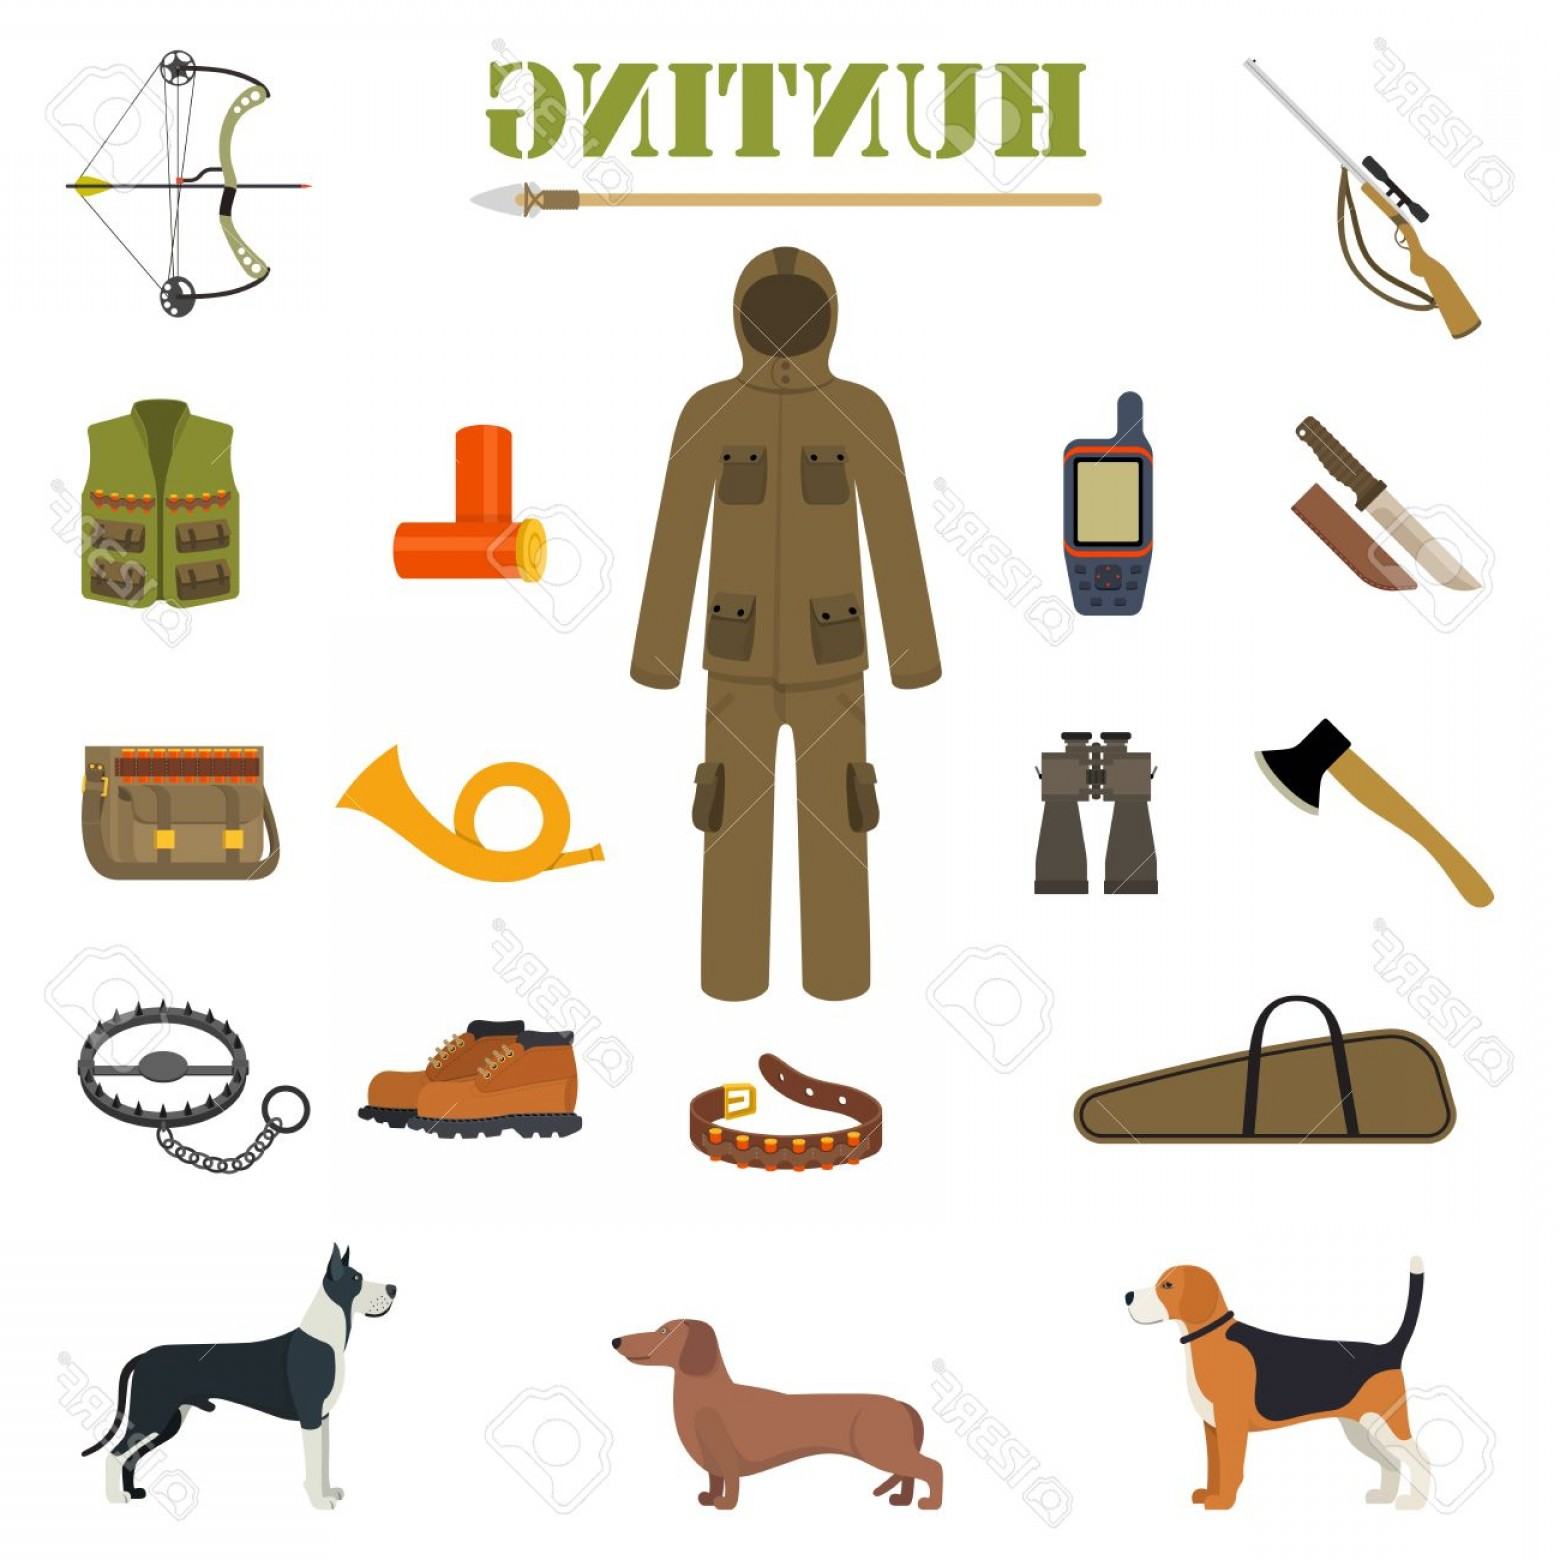 Vector Rifle And Boots: Photostock Vector Hunting Equipment Kit With Rifle Knife Suit Shotgun Boots Patronage Etc Hunting Dogs Vector Illustra